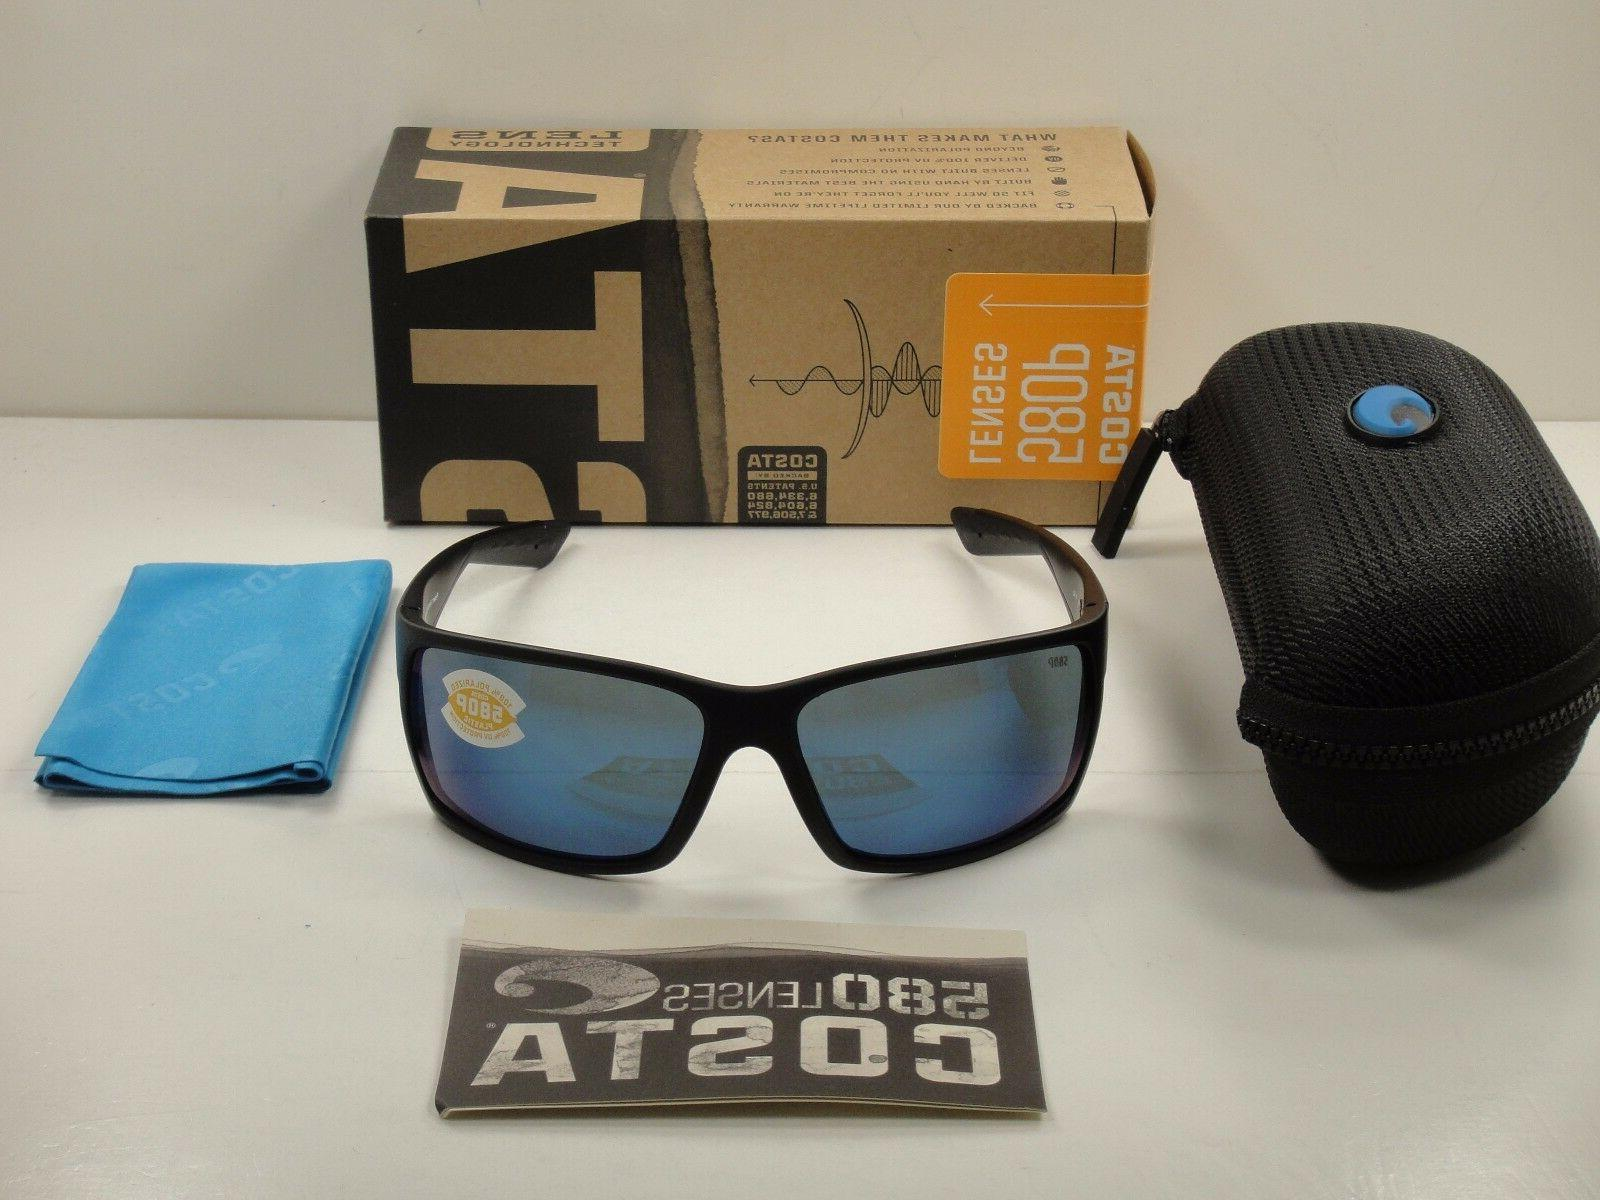 COSTA DEL MAR REEFTON POLARIZED RFT01 OBMP SUNGLASSES BLACKO